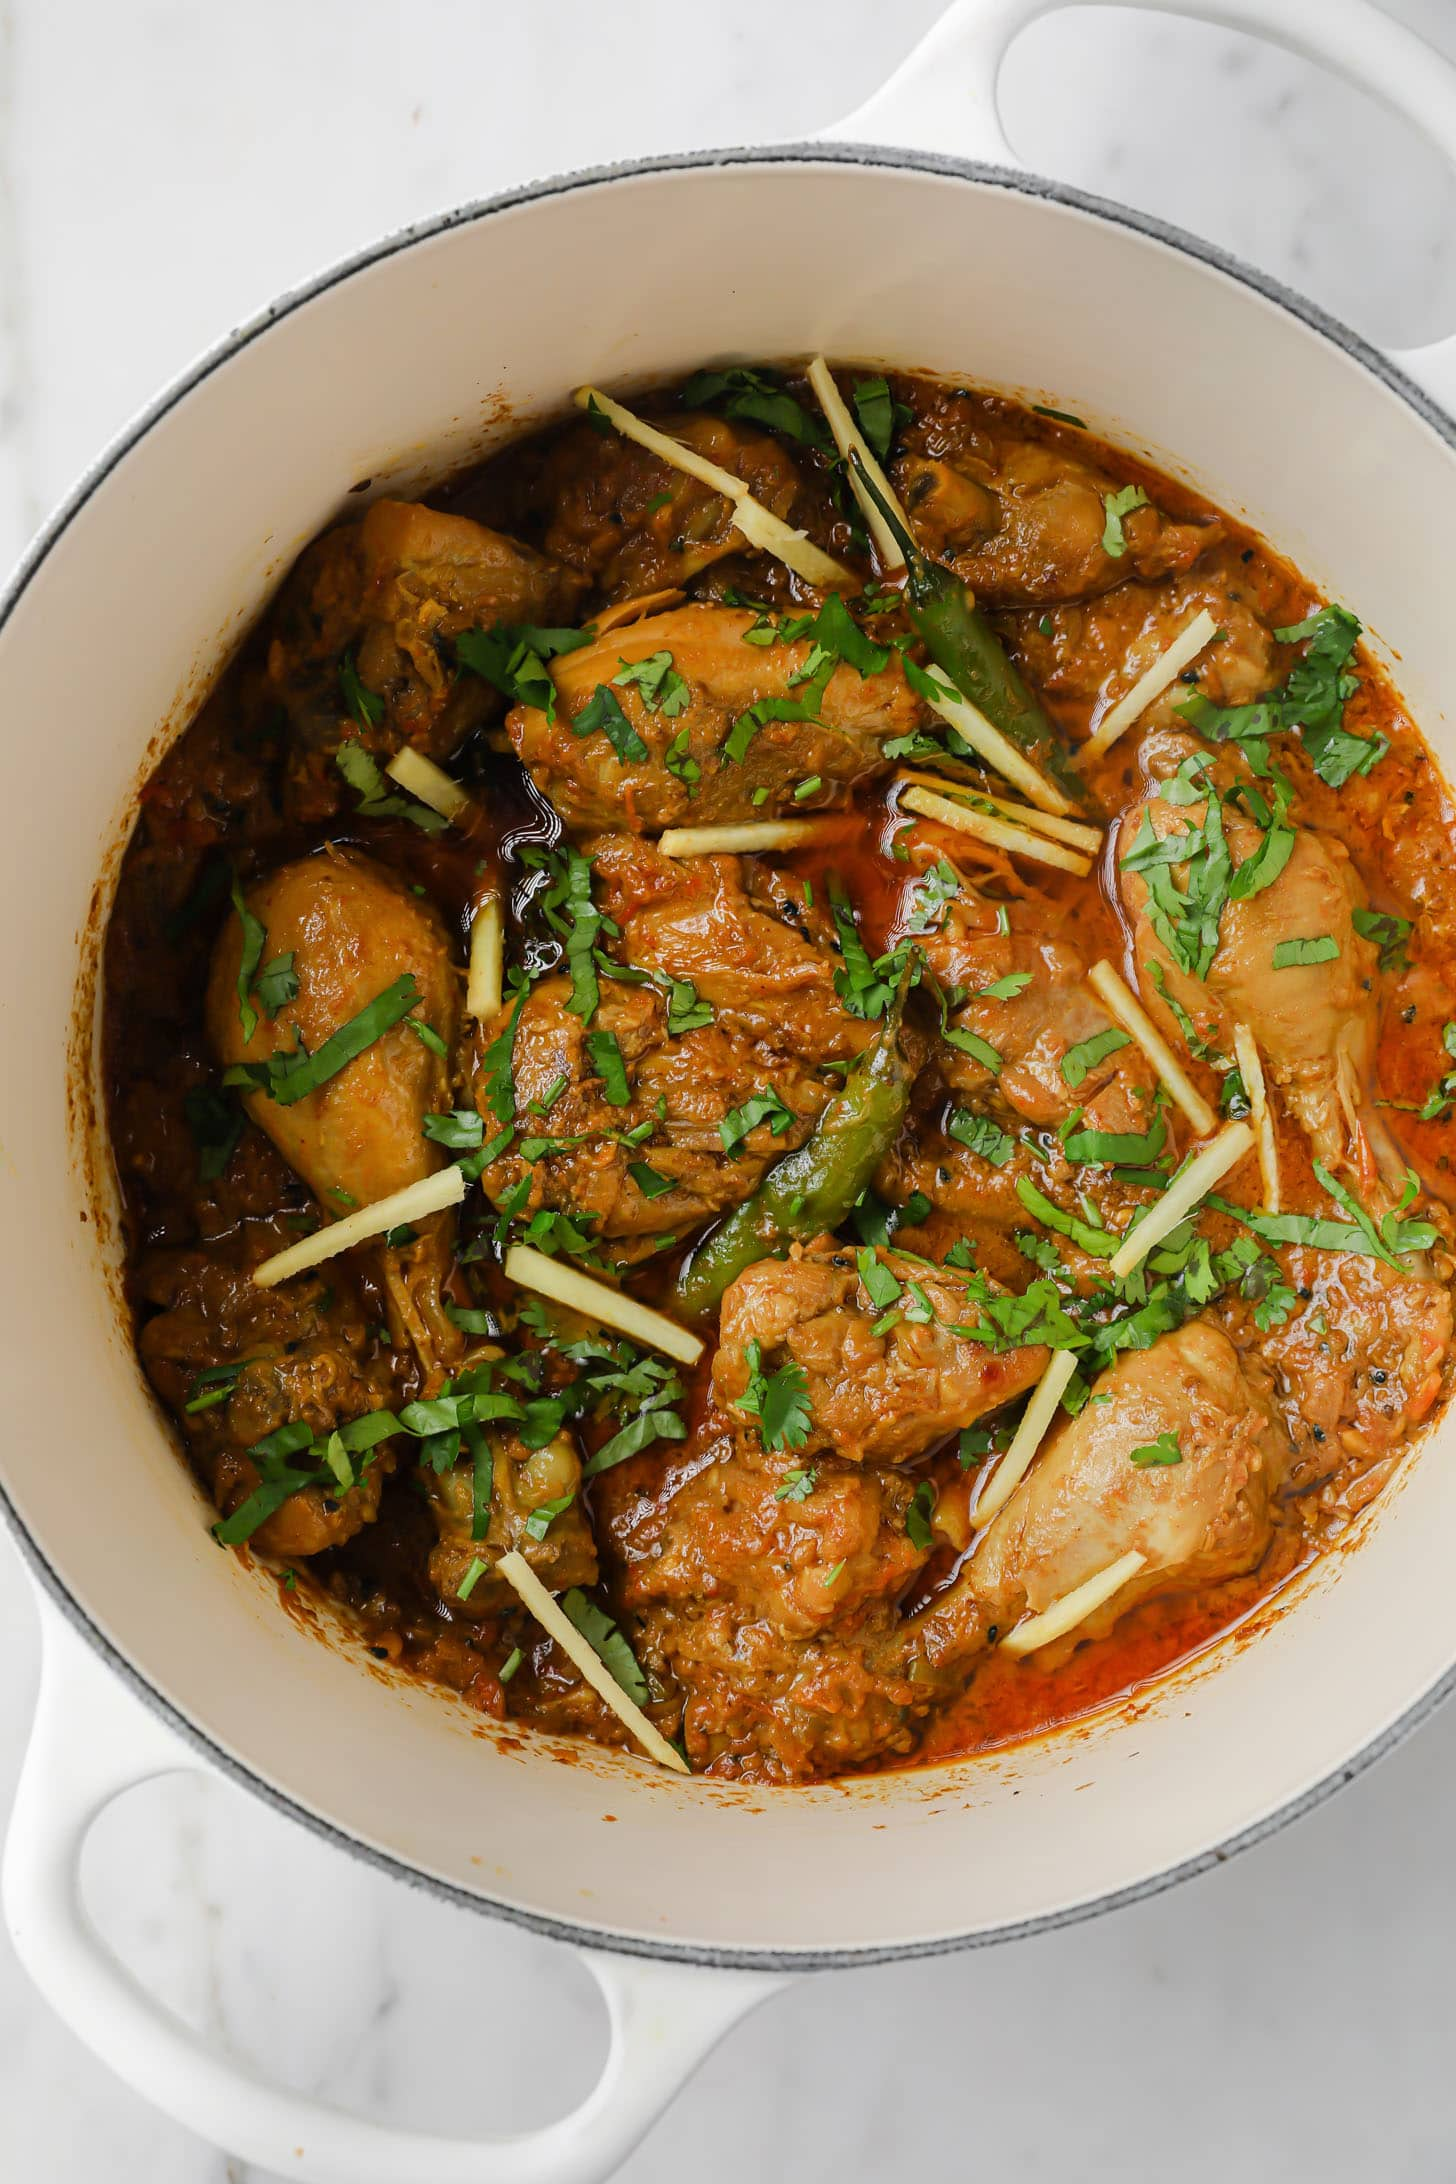 A finished shot of Achari Chicken Curry garnished with cilantro and julienned ginger